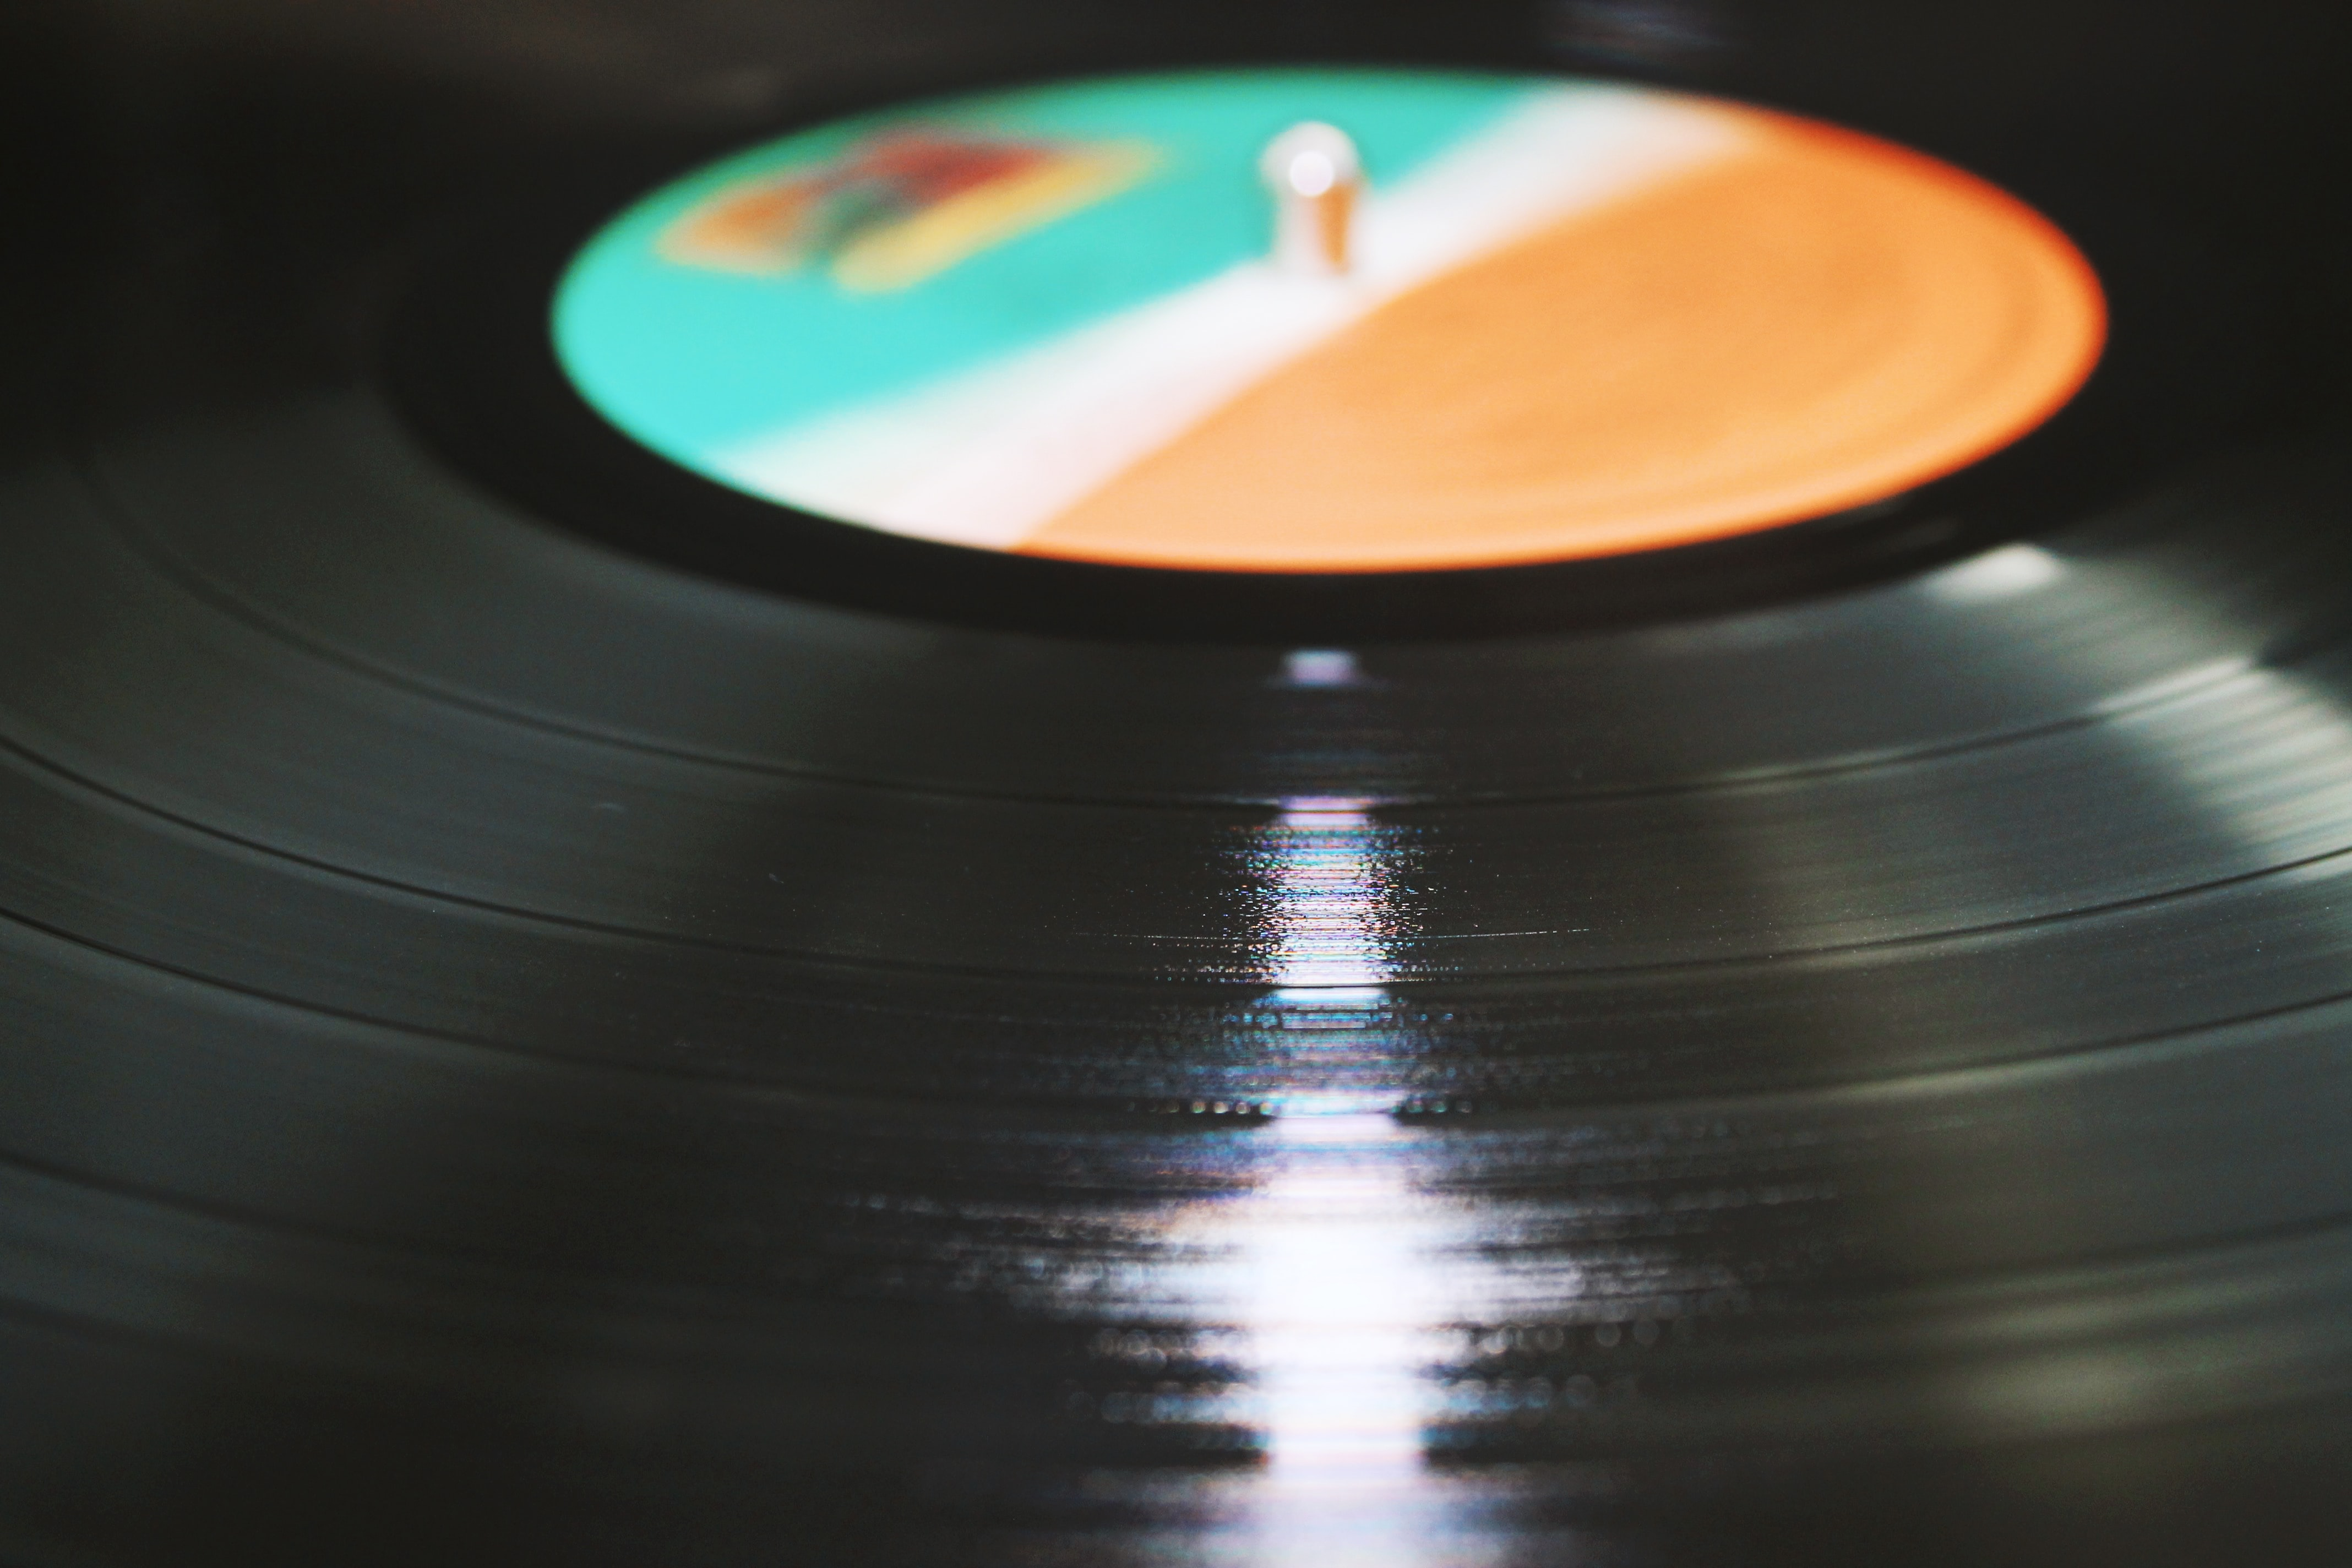 A close-up of the spinning surface of a vinyl record